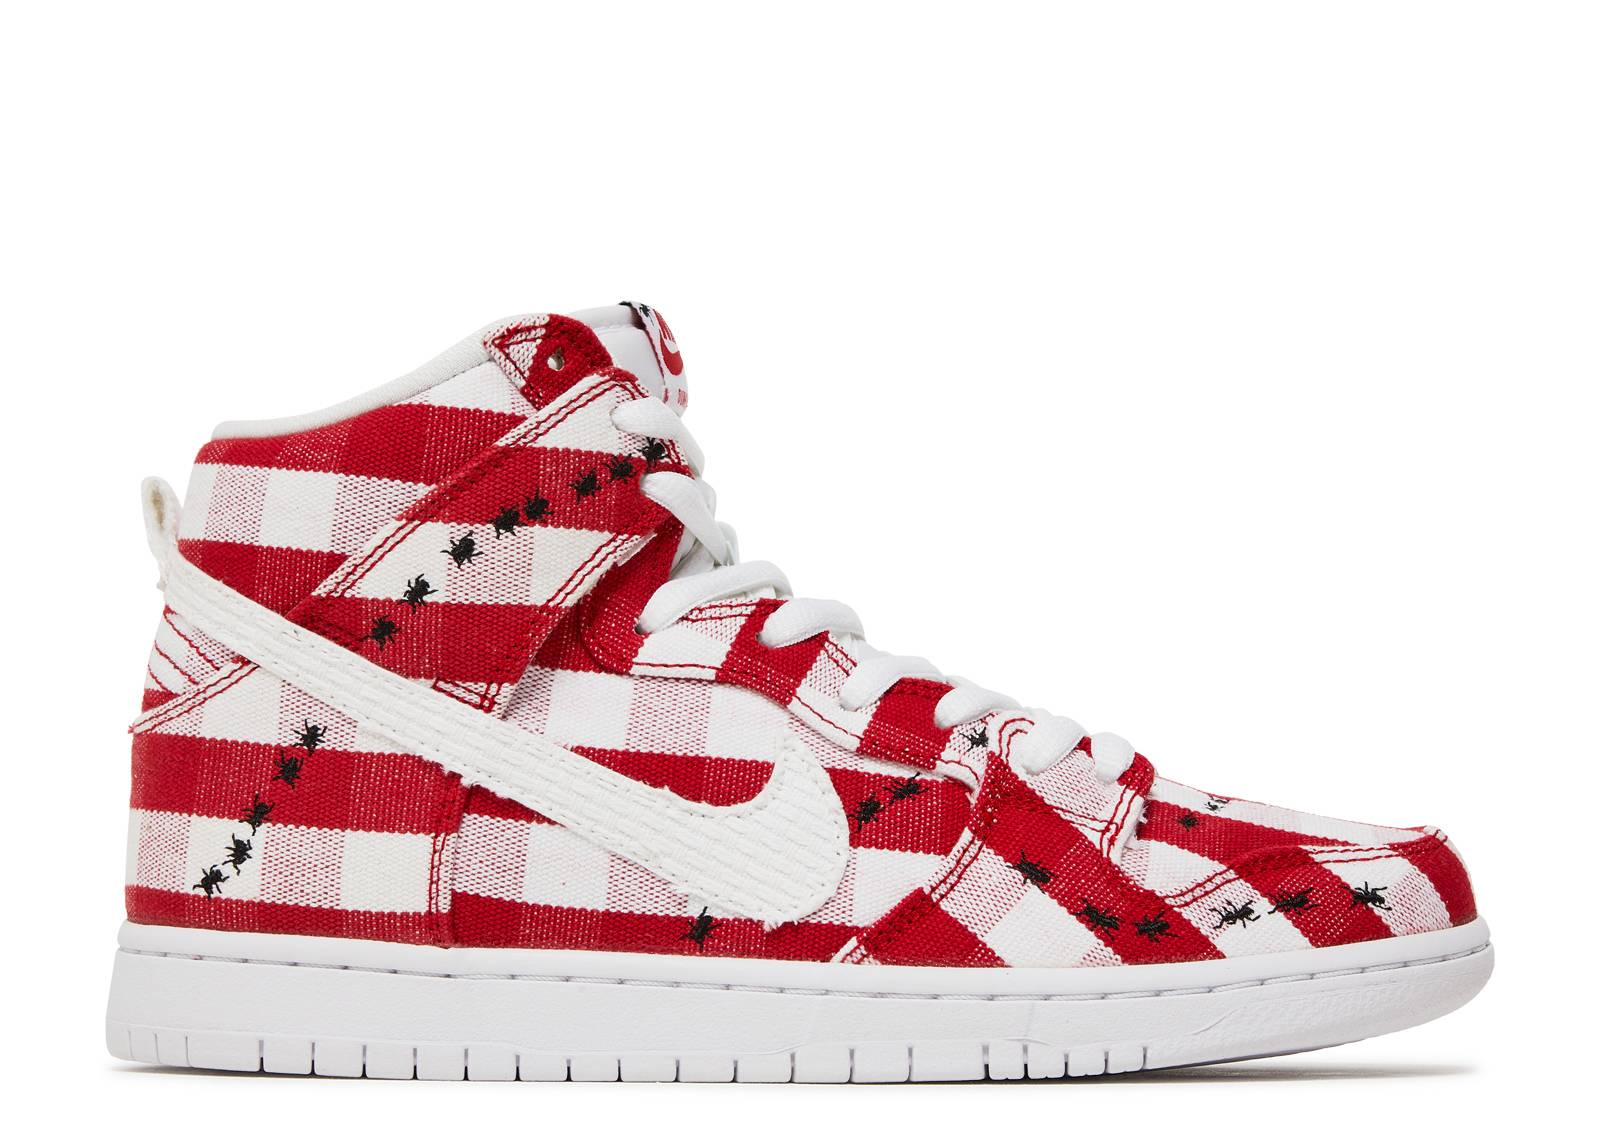 Nike SB Dunk High Pro 'University Red & White' Release Date